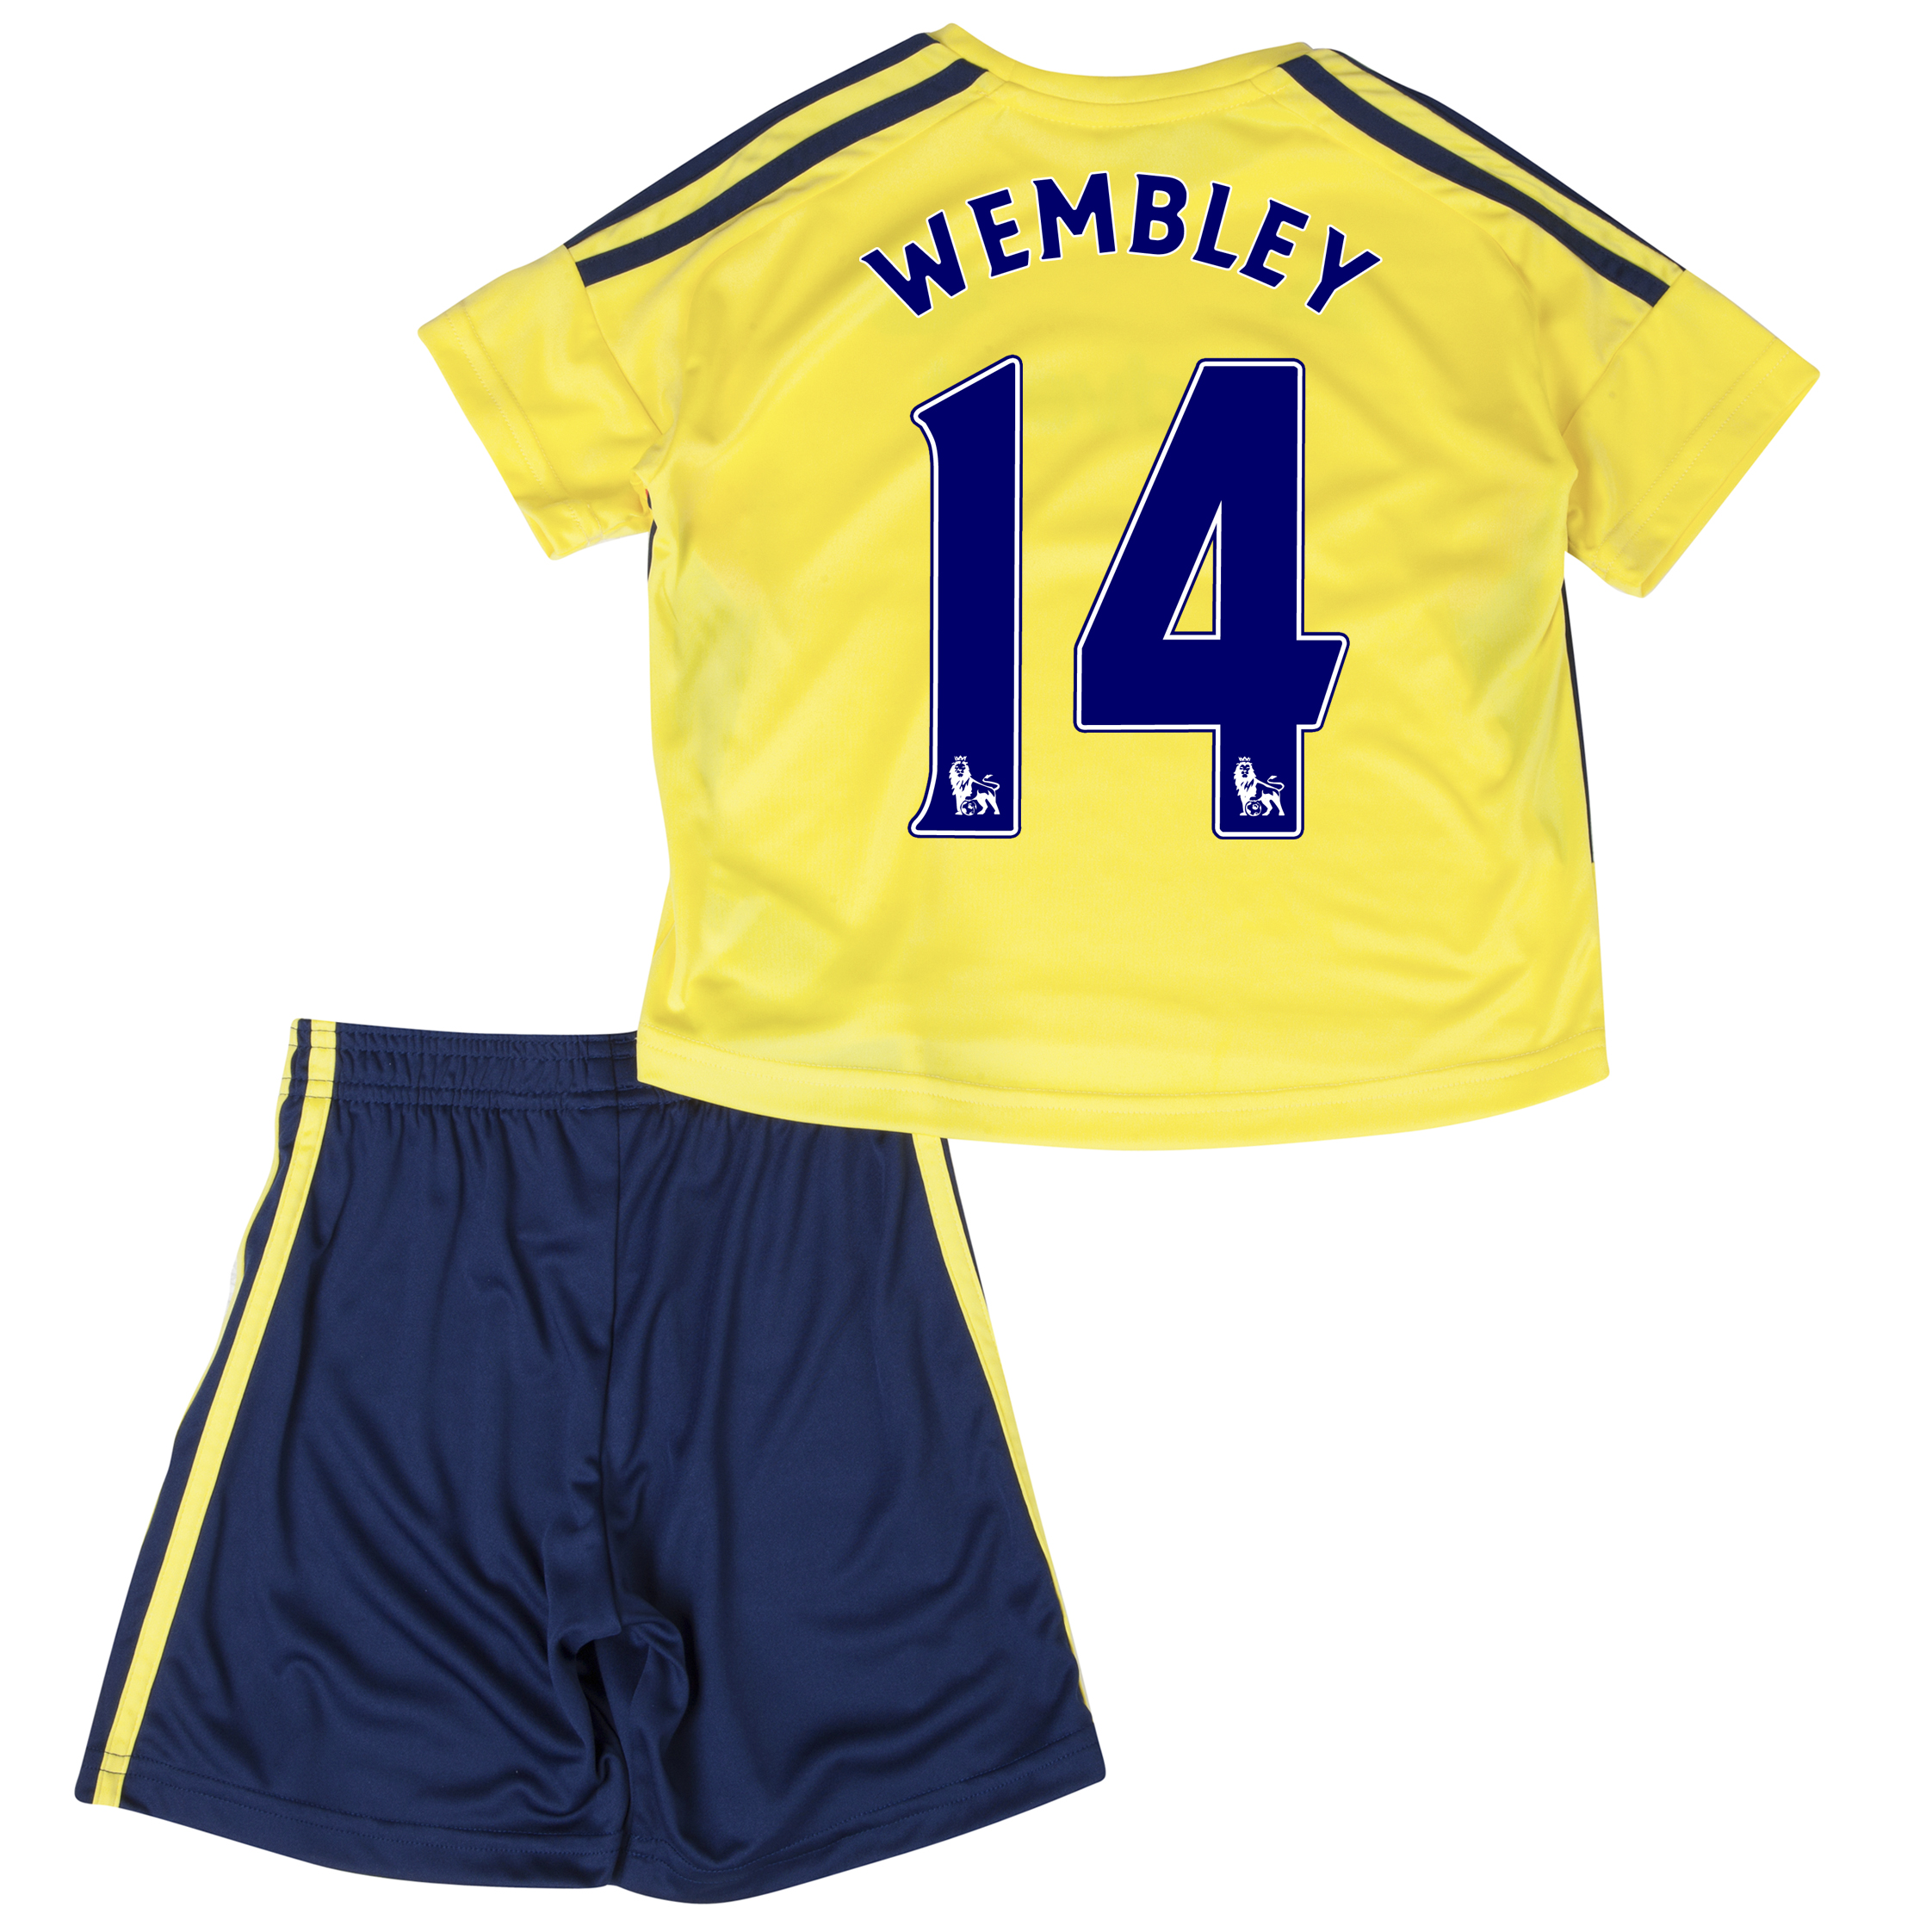 Sunderland Away Minikit 2013/14 - Infants with Wembley 14 printing